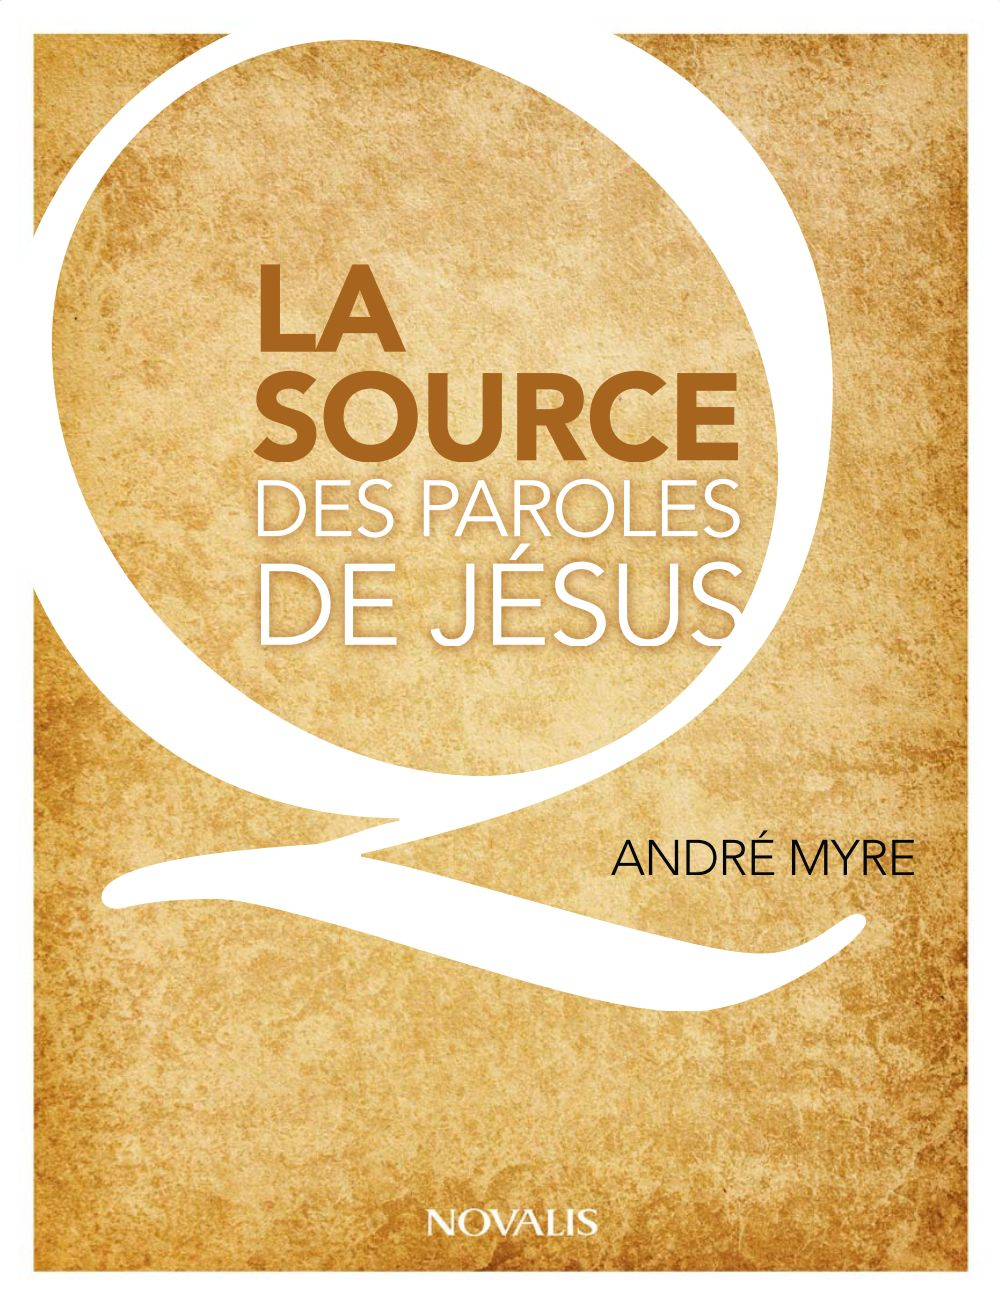 La source des paroles de Jésus